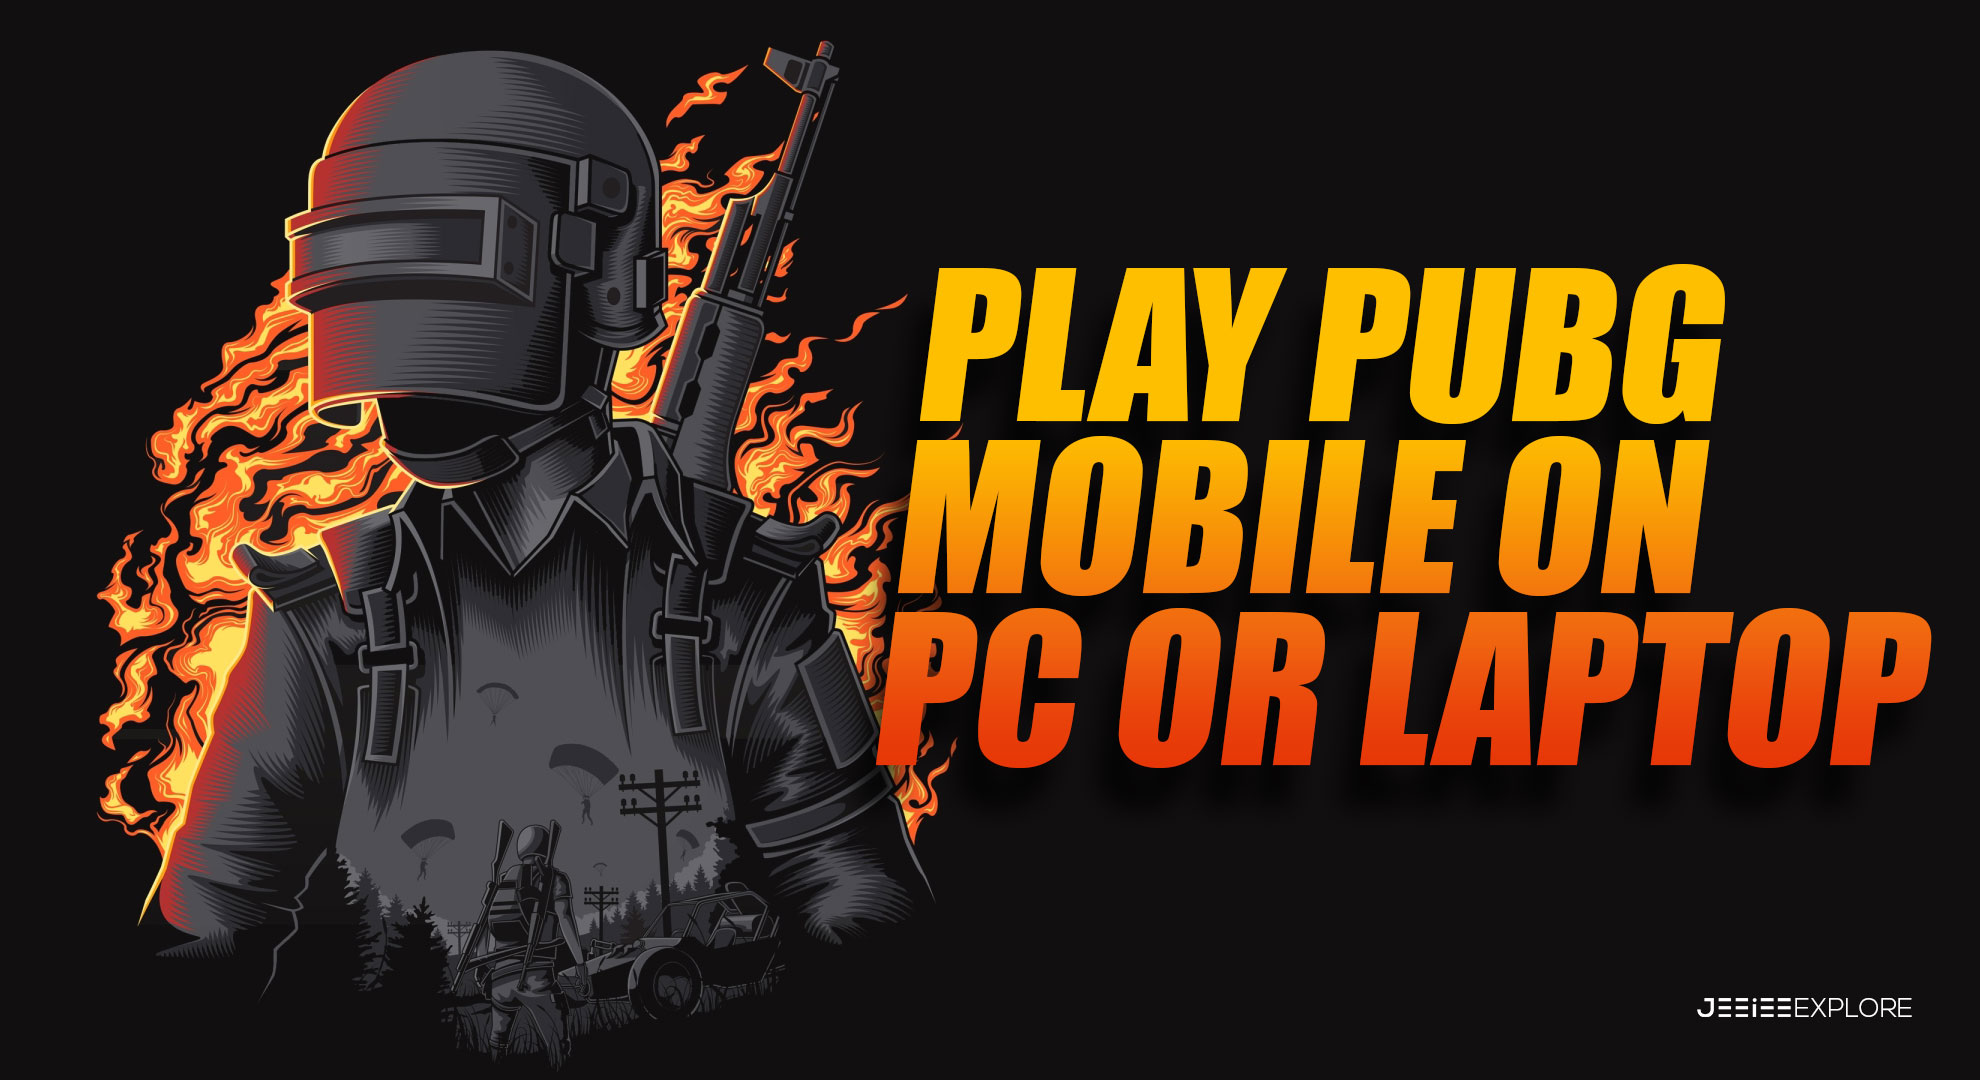 How can you play PUBG Mobile on PC or Laptop?